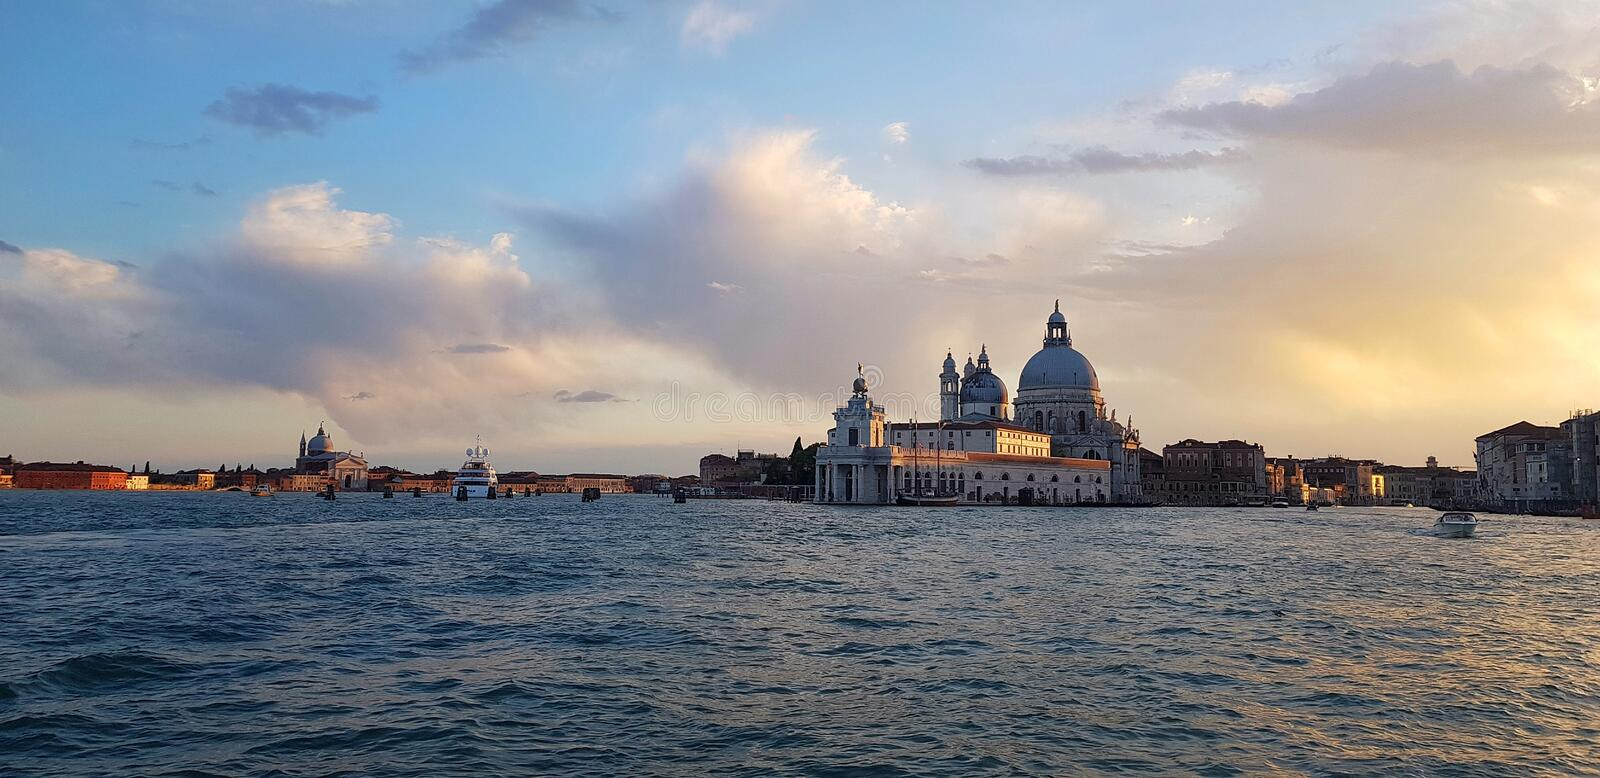 Panoramic photo of the Venetian lagoon in the evening. Traveling in Italy royalty free stock photography